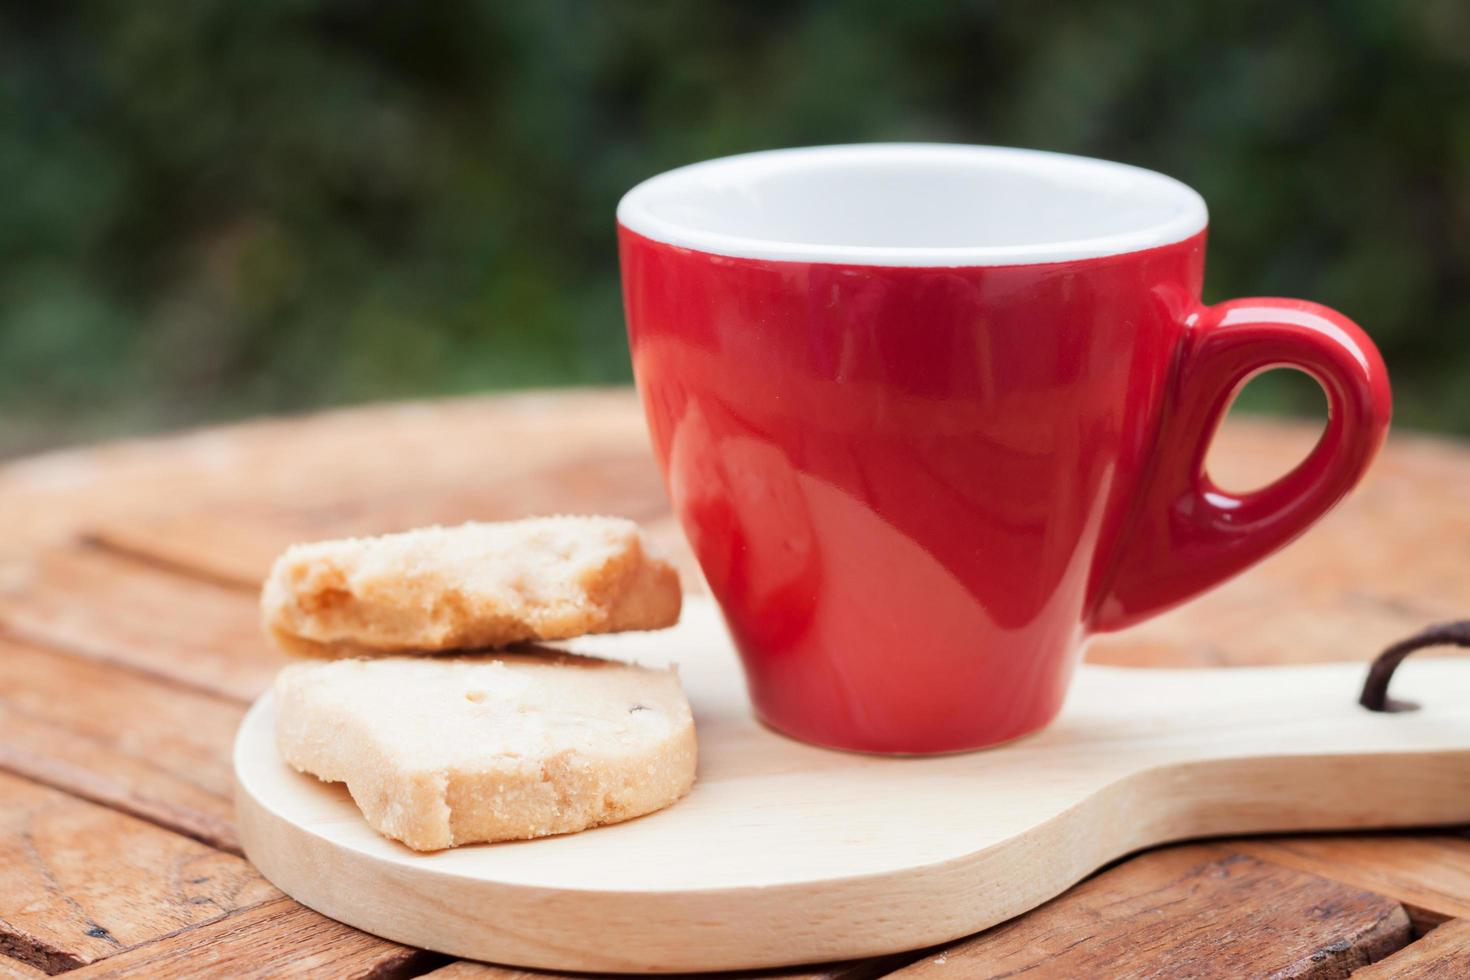 Cashew cookies with a red coffee cup photo